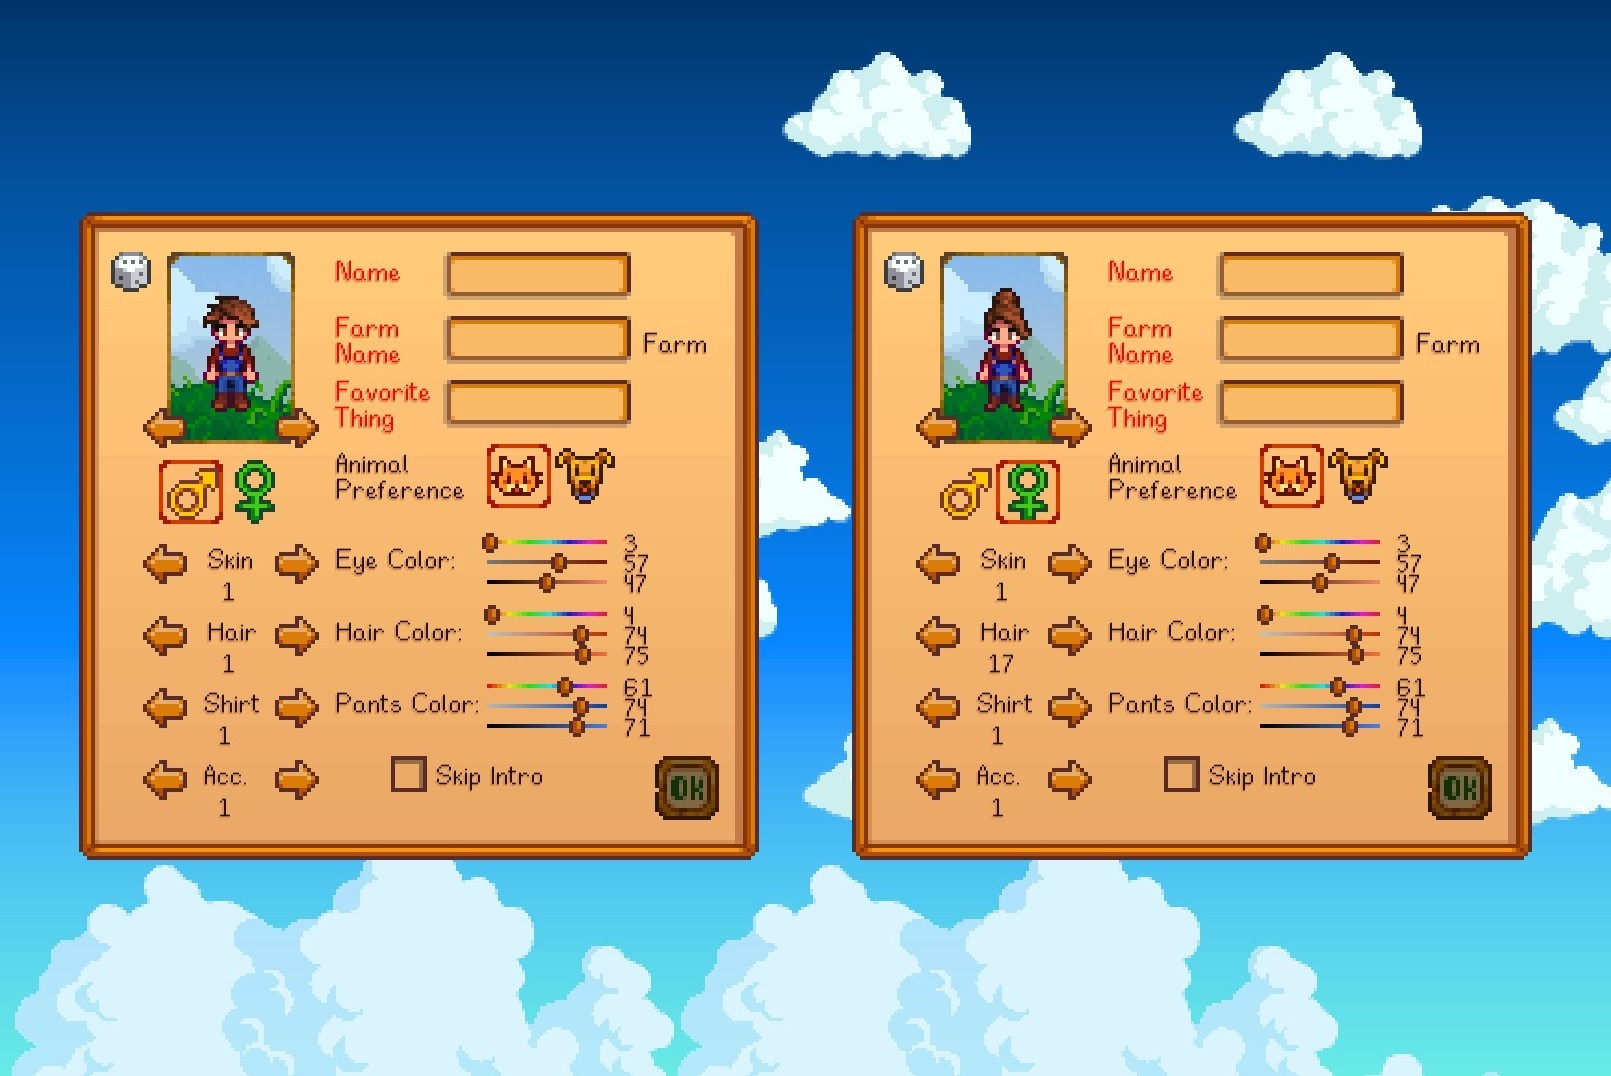 Two character selection screens, one with a masc looking person and one with a femme looking person.